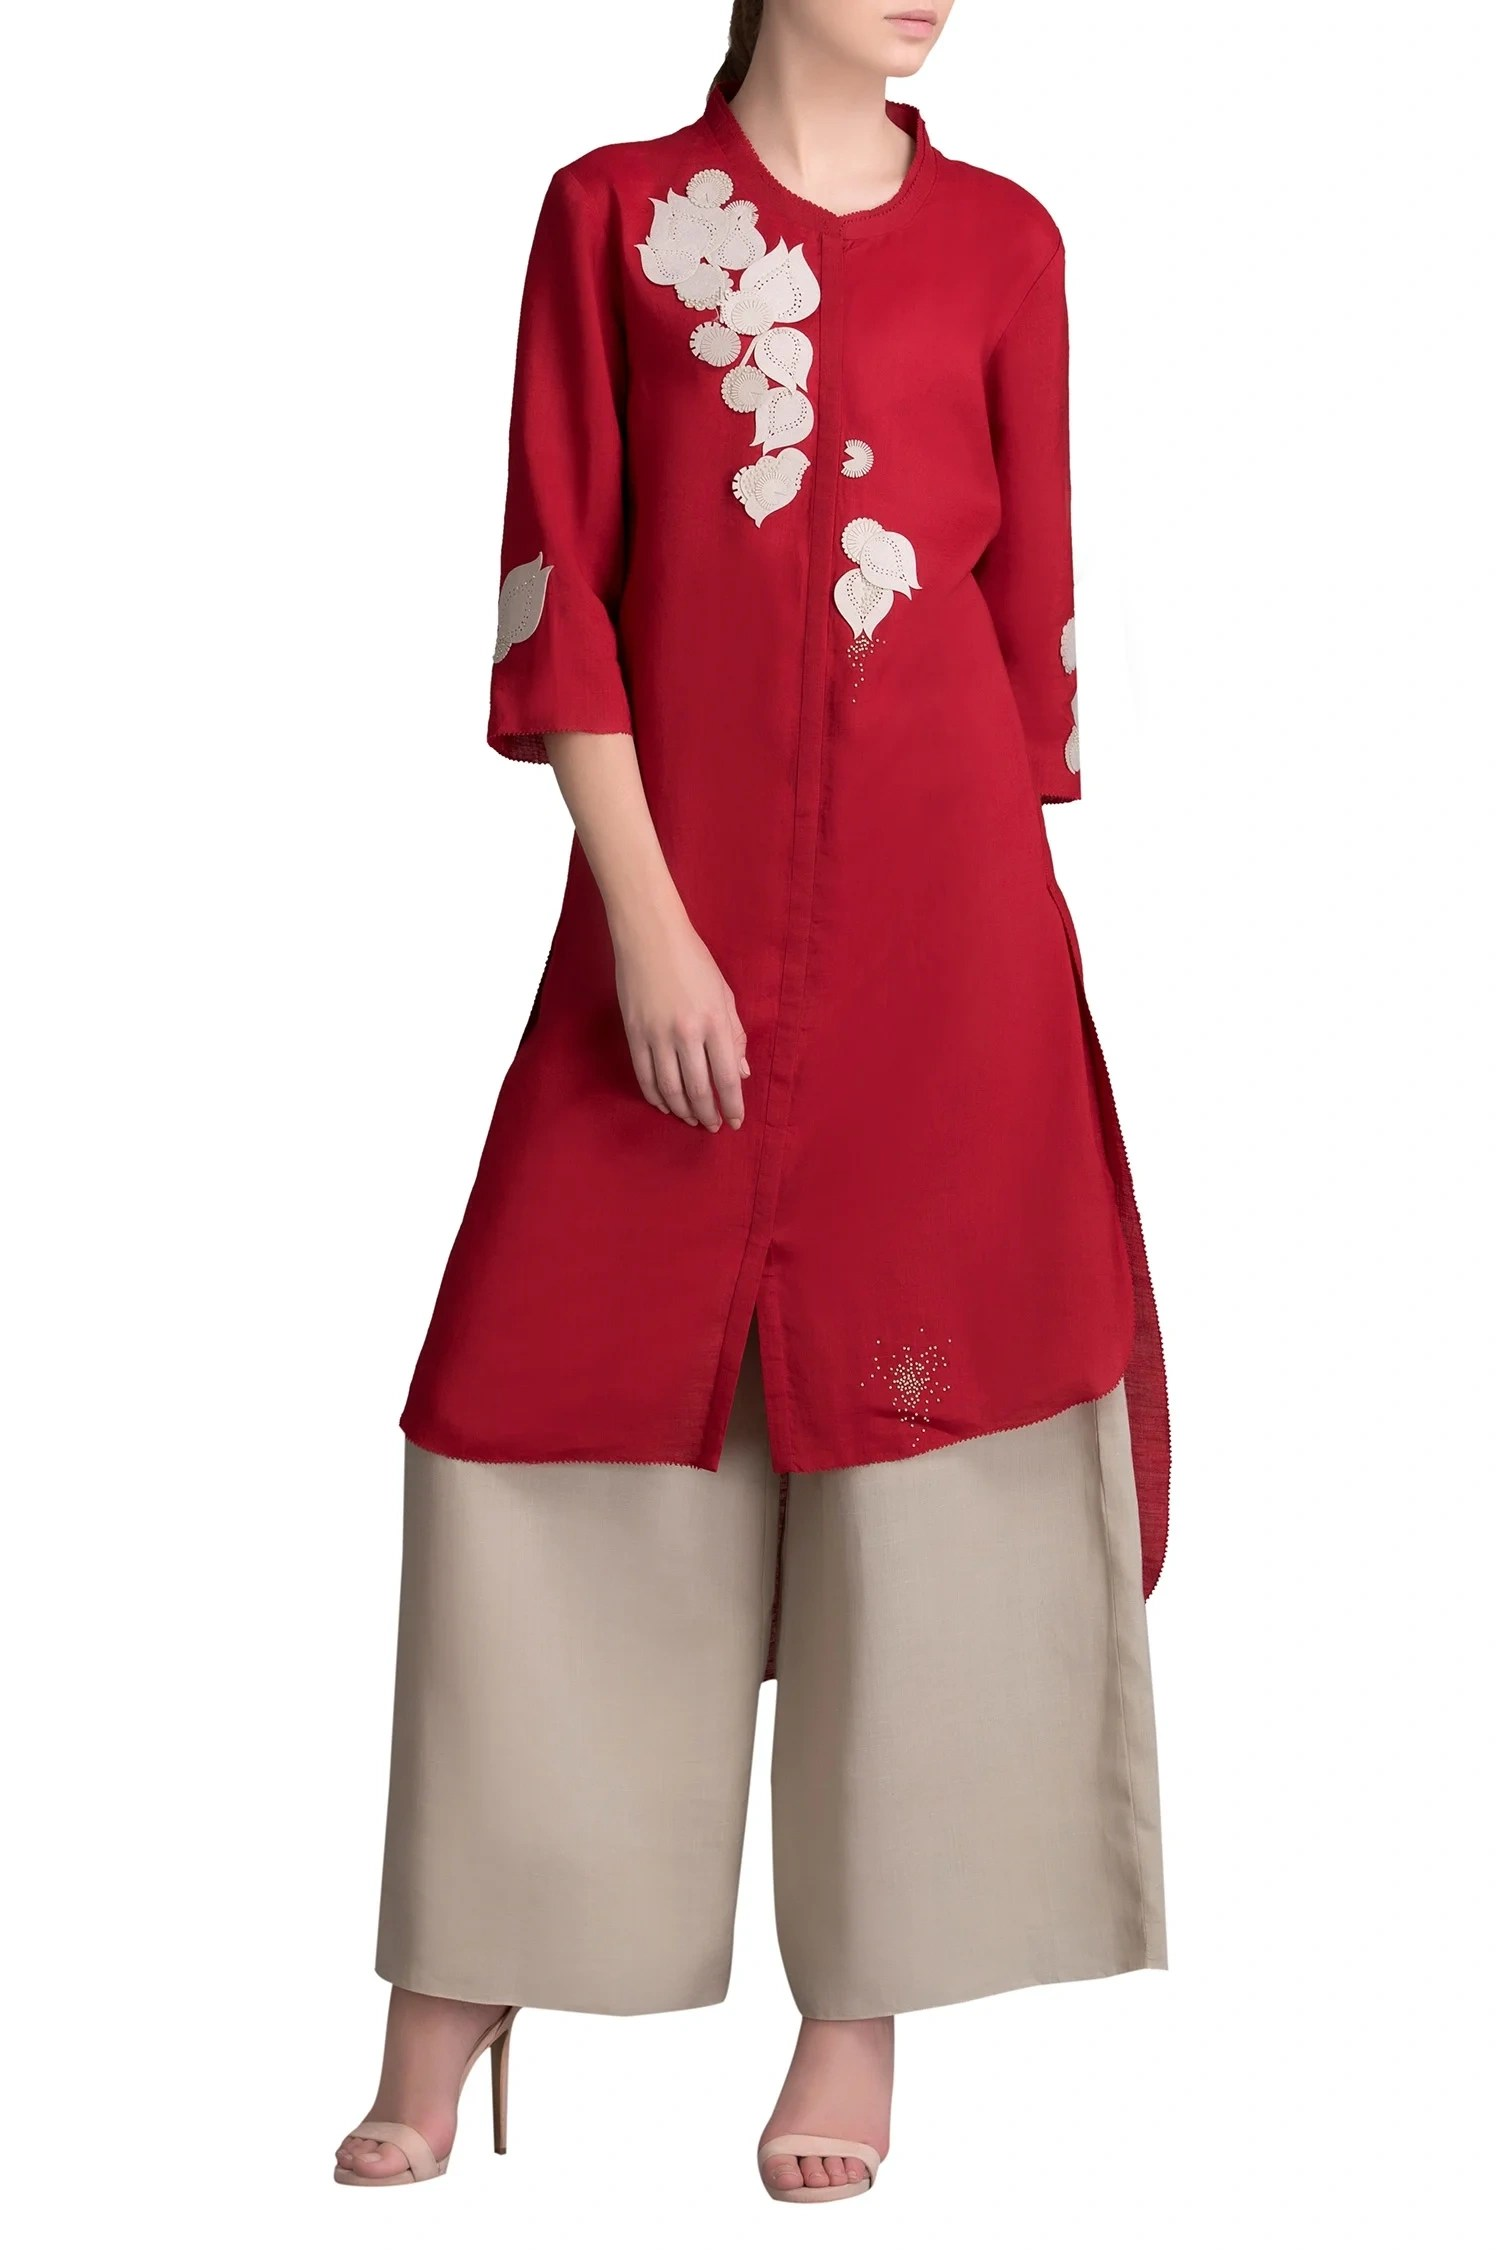 Ampm Applique Latest Collection Of Kurta Sets By Am Pm